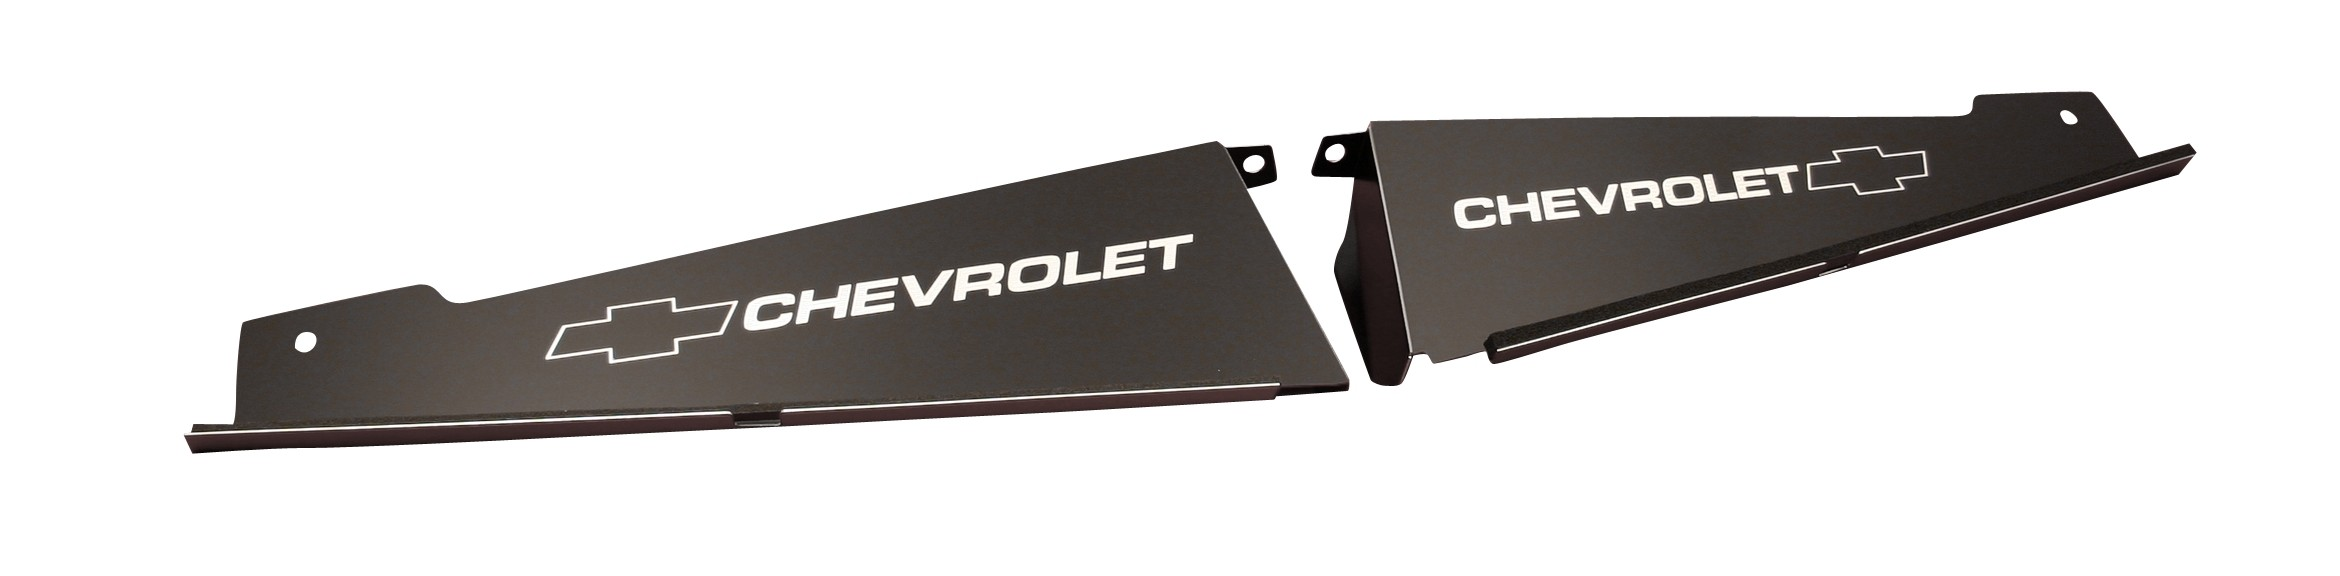 "67-69 2 Piece Camaro Radiator Show Panel - black - with ""Bowtie/Chevrolet"" Engraved"